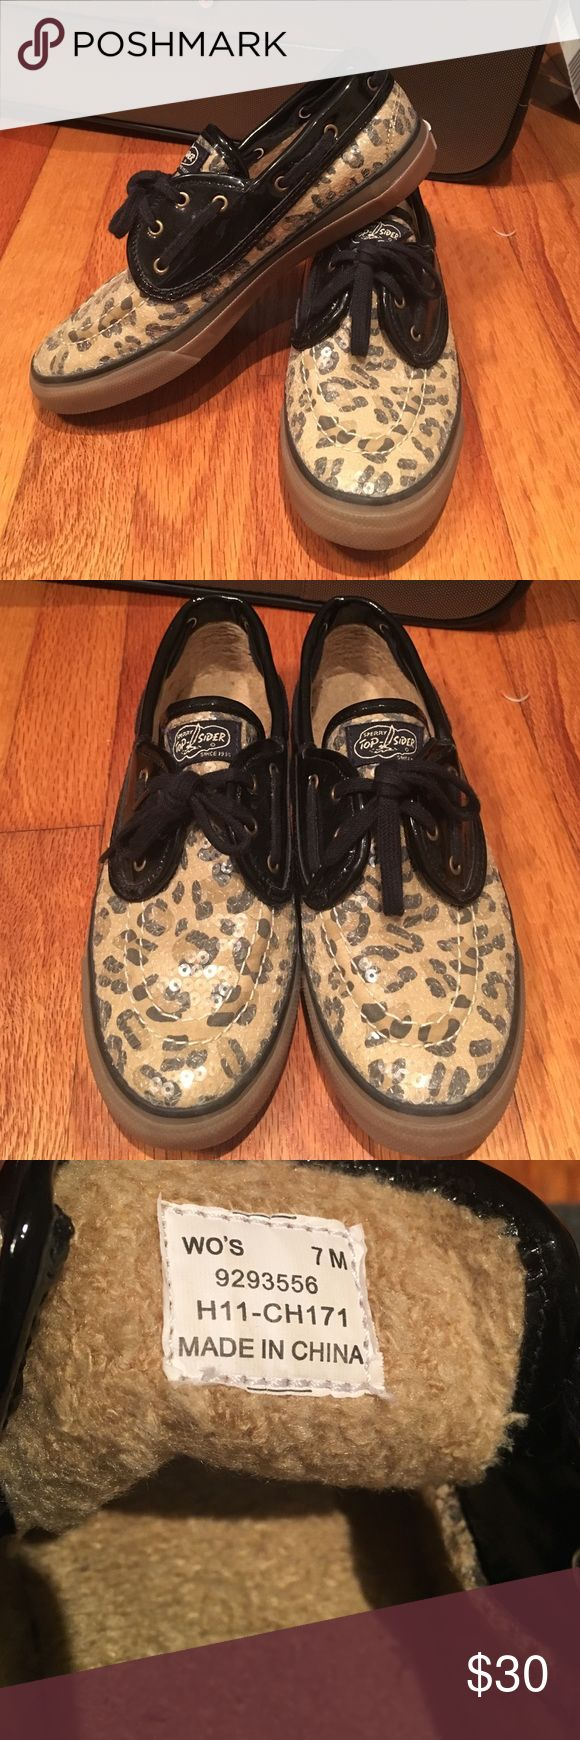 Sequined leopard Sperry top-siders Cuter and comfortable sperrys! Sperry Top-Sider Shoes Sneakers